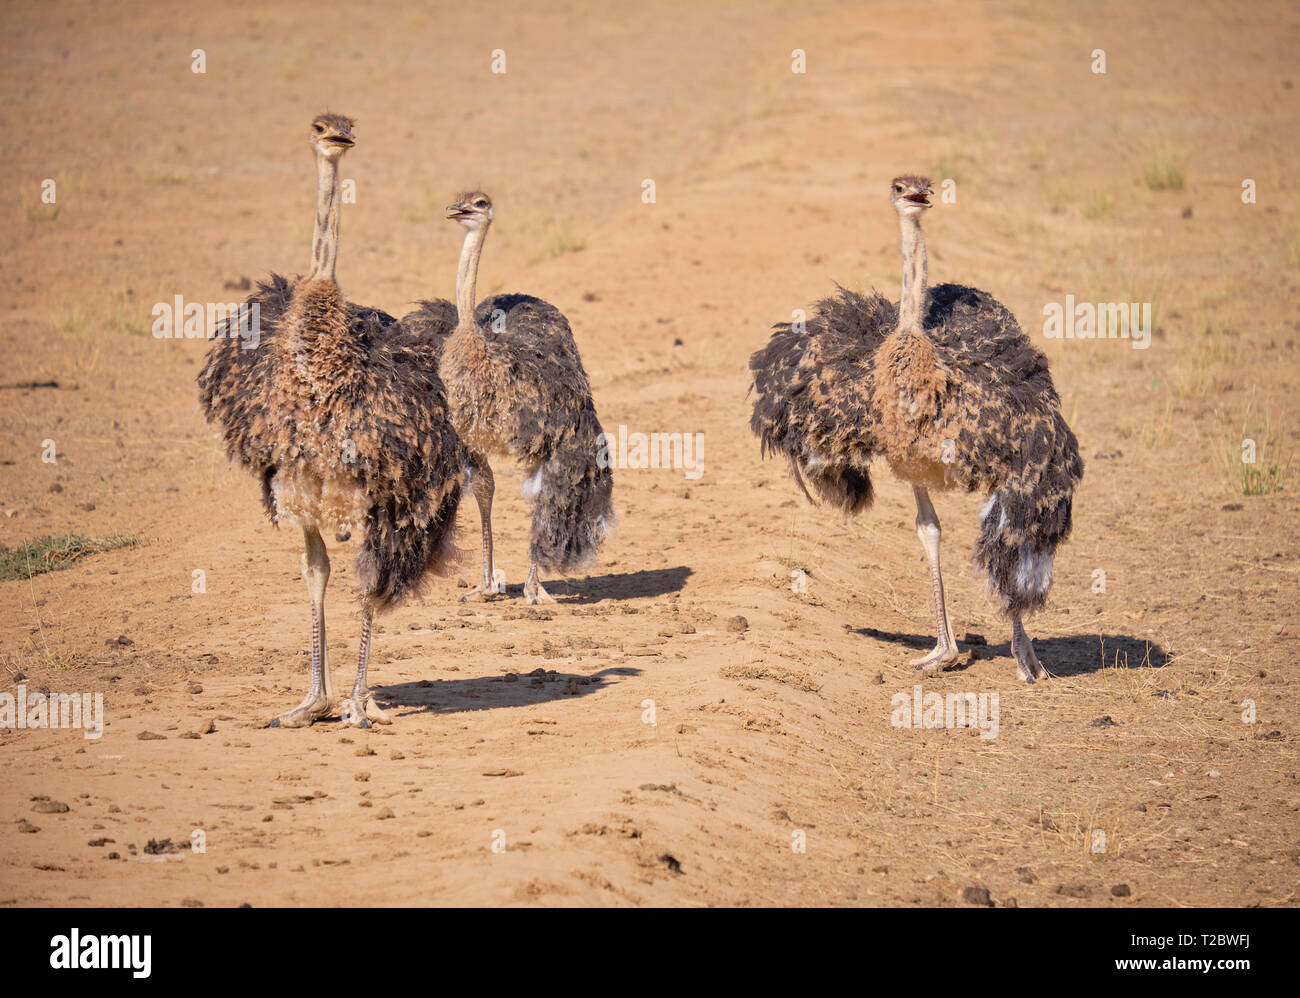 Juvenile ostrich standing in dirt field, looking towards viewers Stock Photo